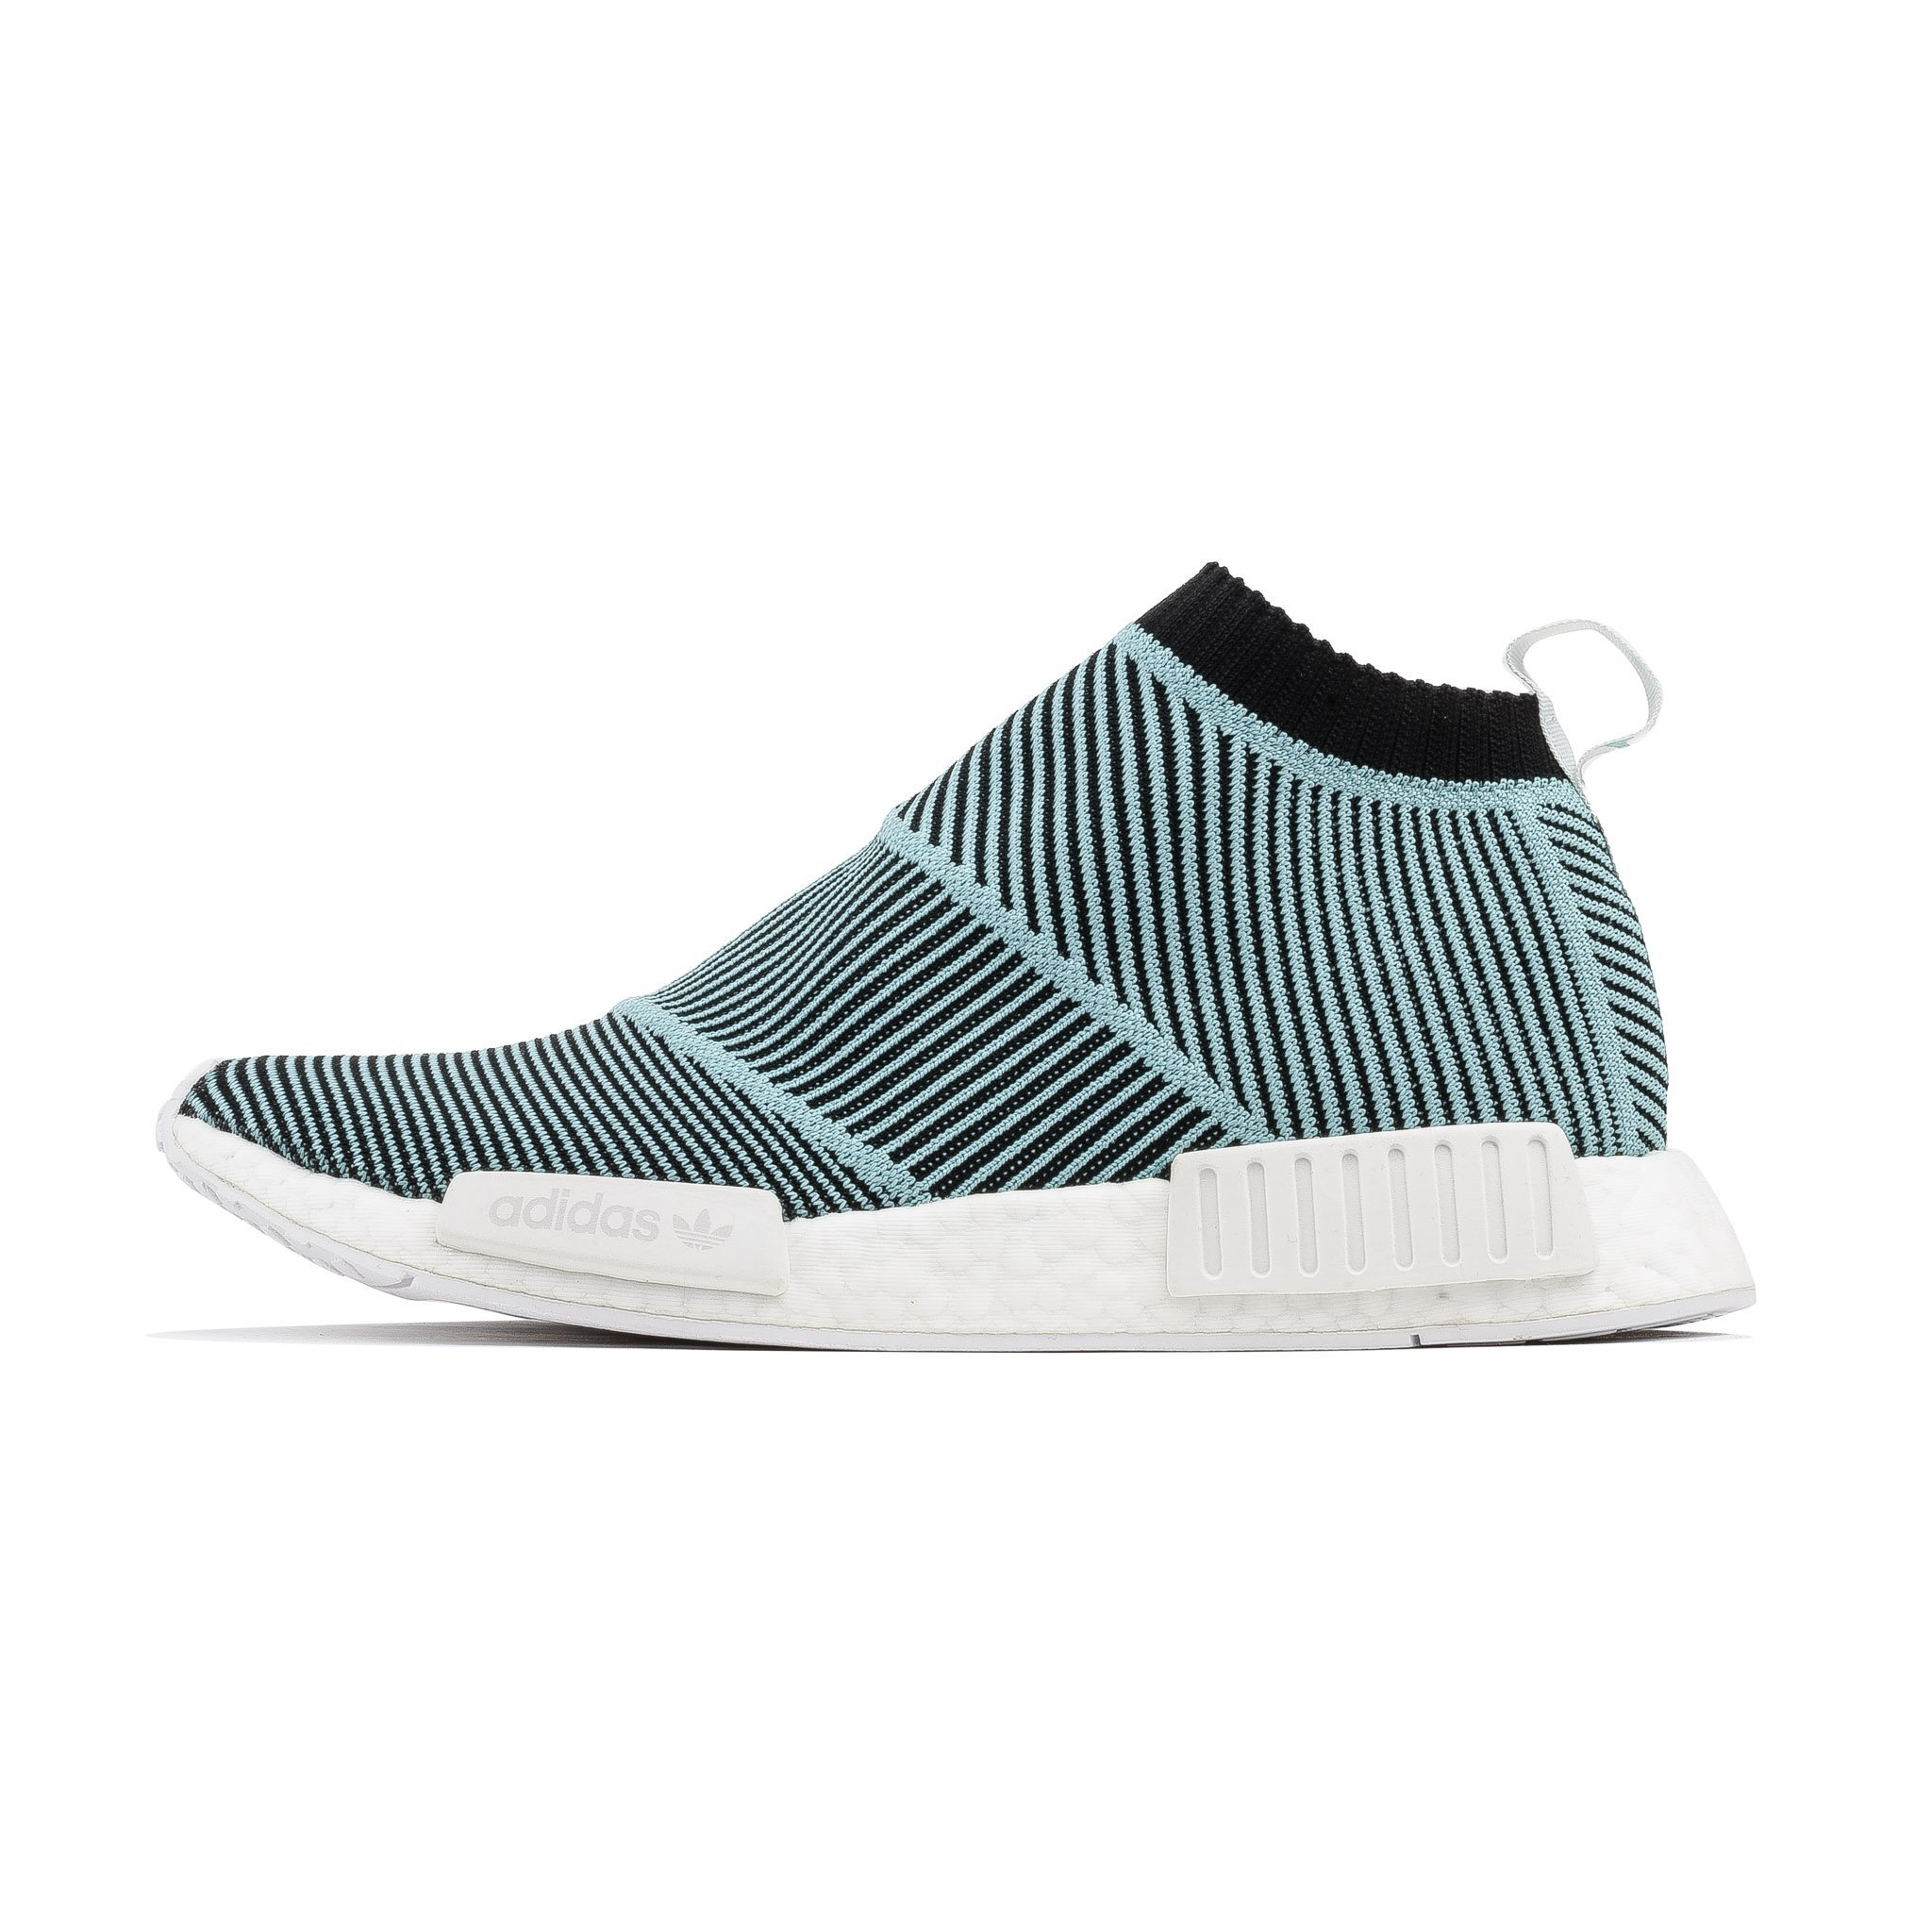 Fare The Ocean Wet For ModaAdidas Grass Riciclare E Parley DY29IeEWH